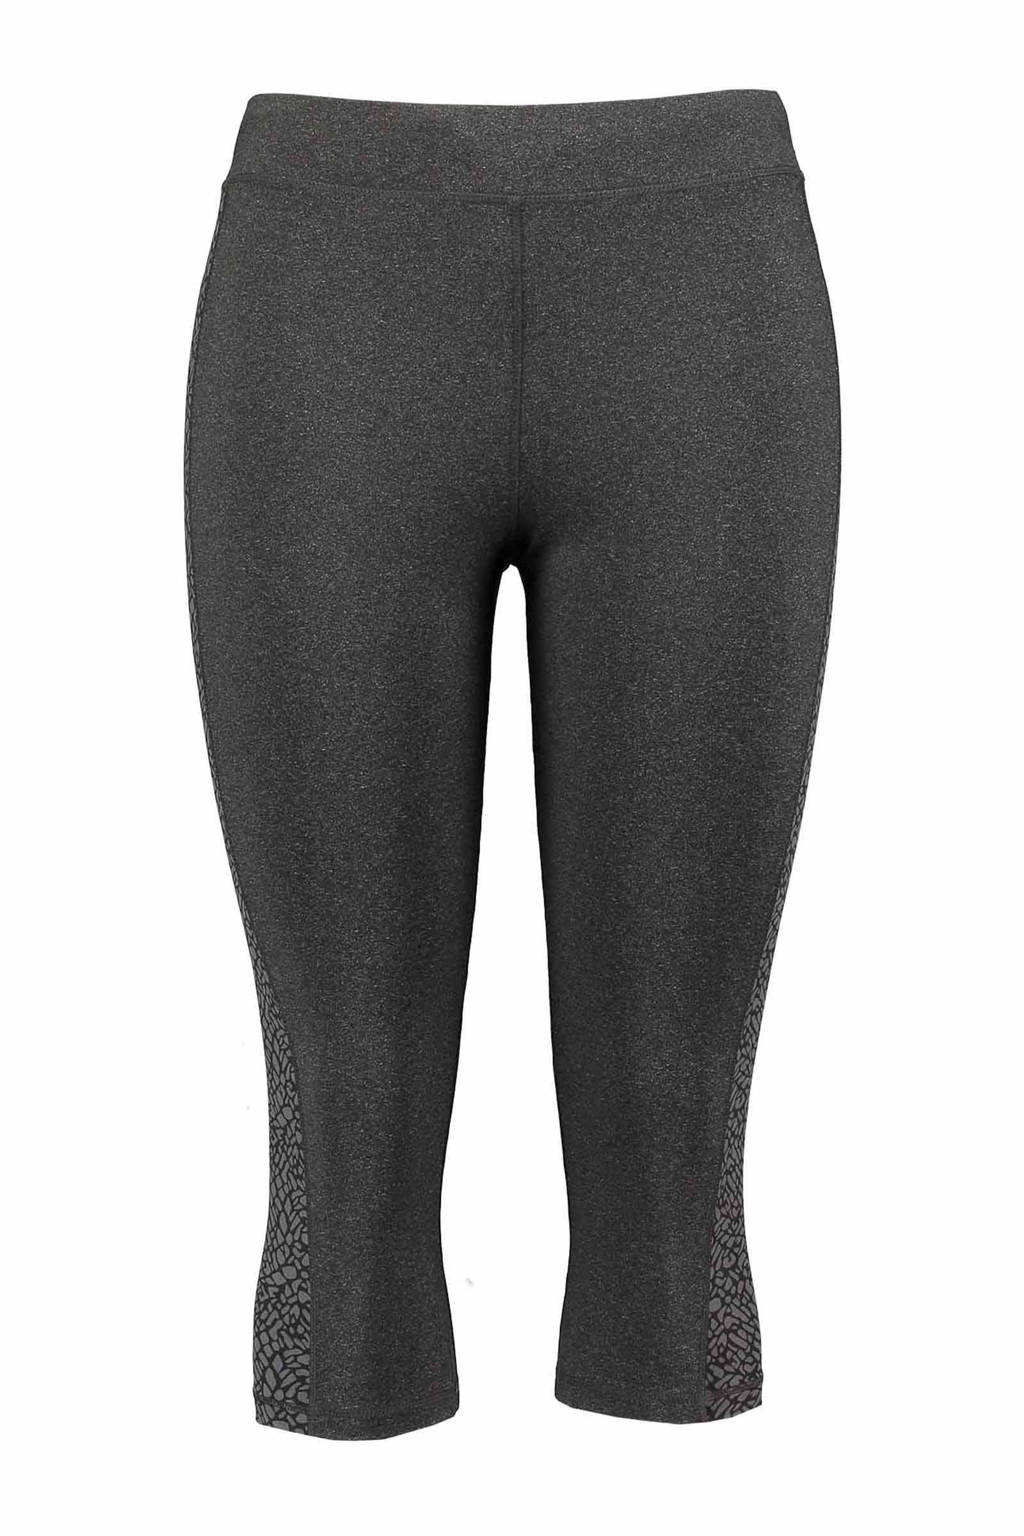 Capri Sportlegging.Ms Mode Capri Sportlegging Wehkamp